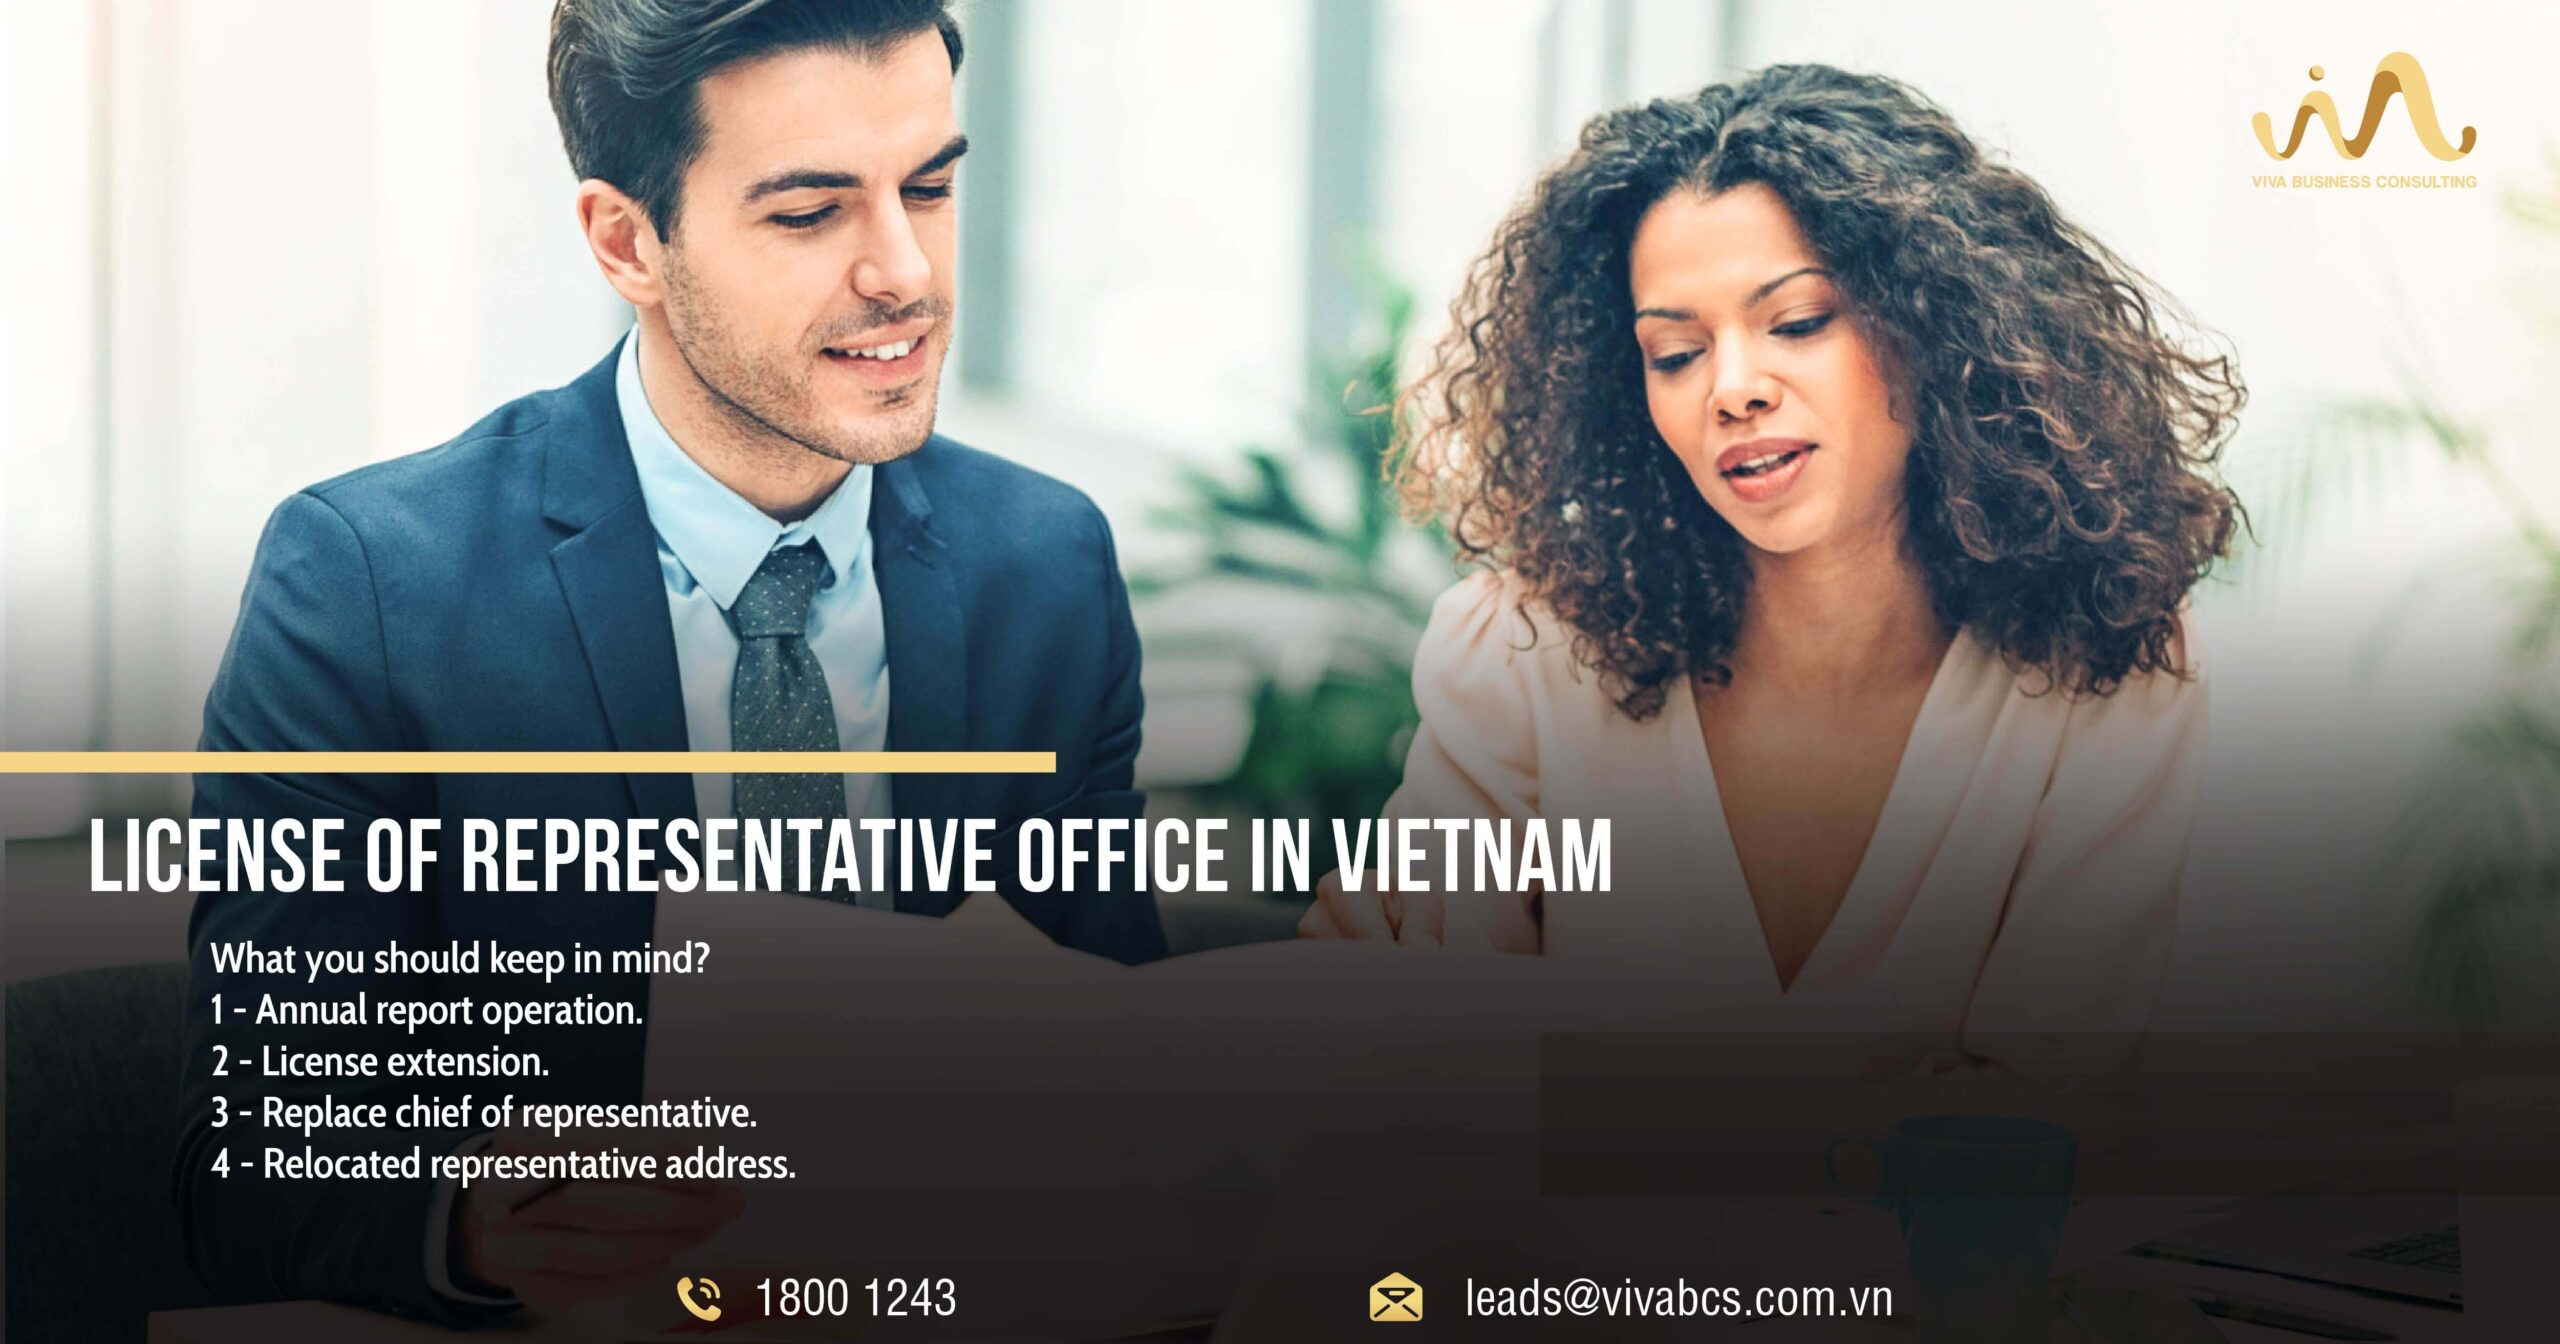 License of representative office in Vietnam